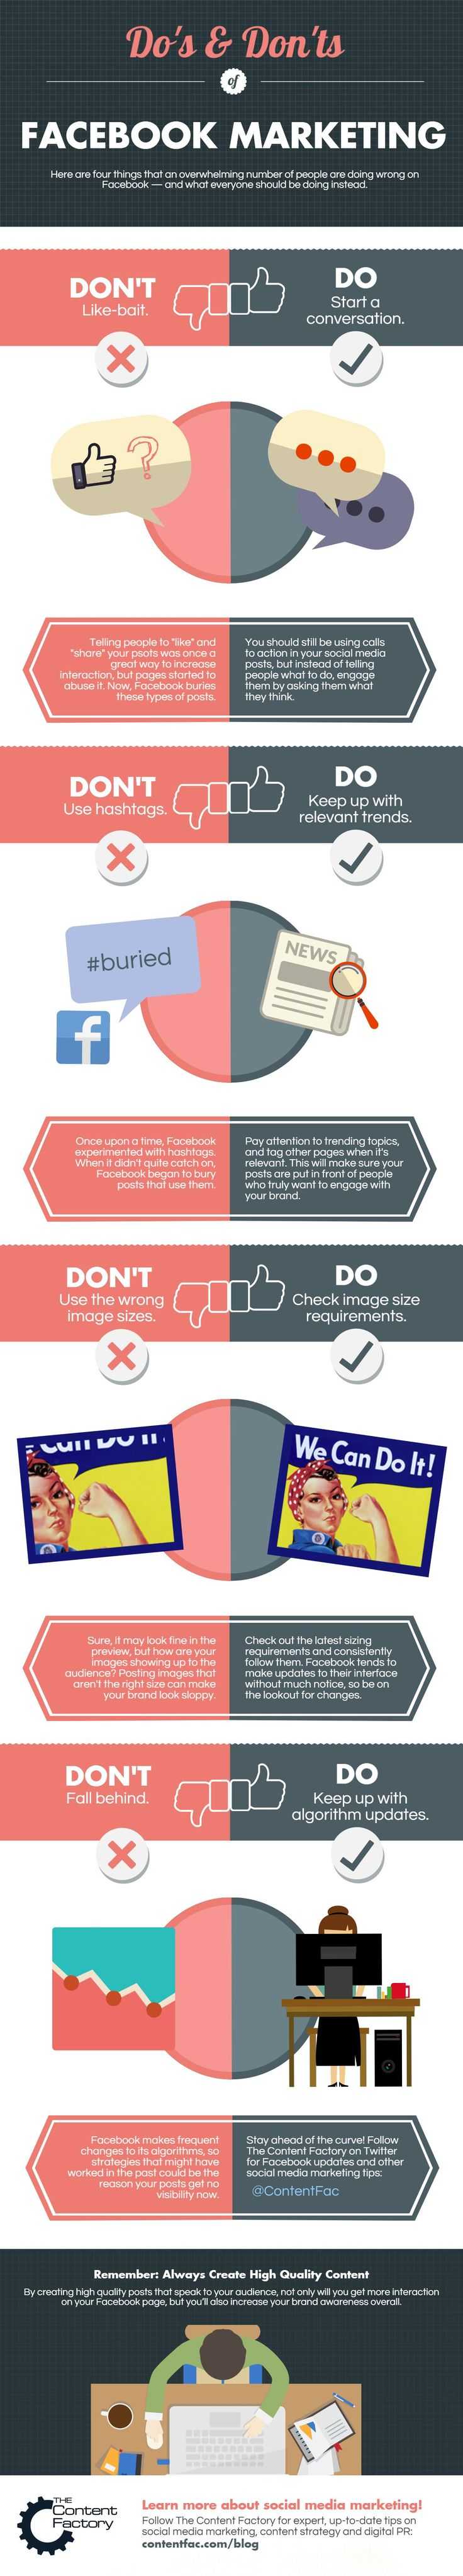 Facebook Marketing Strategy Fails: Do This, Not That #Infographic